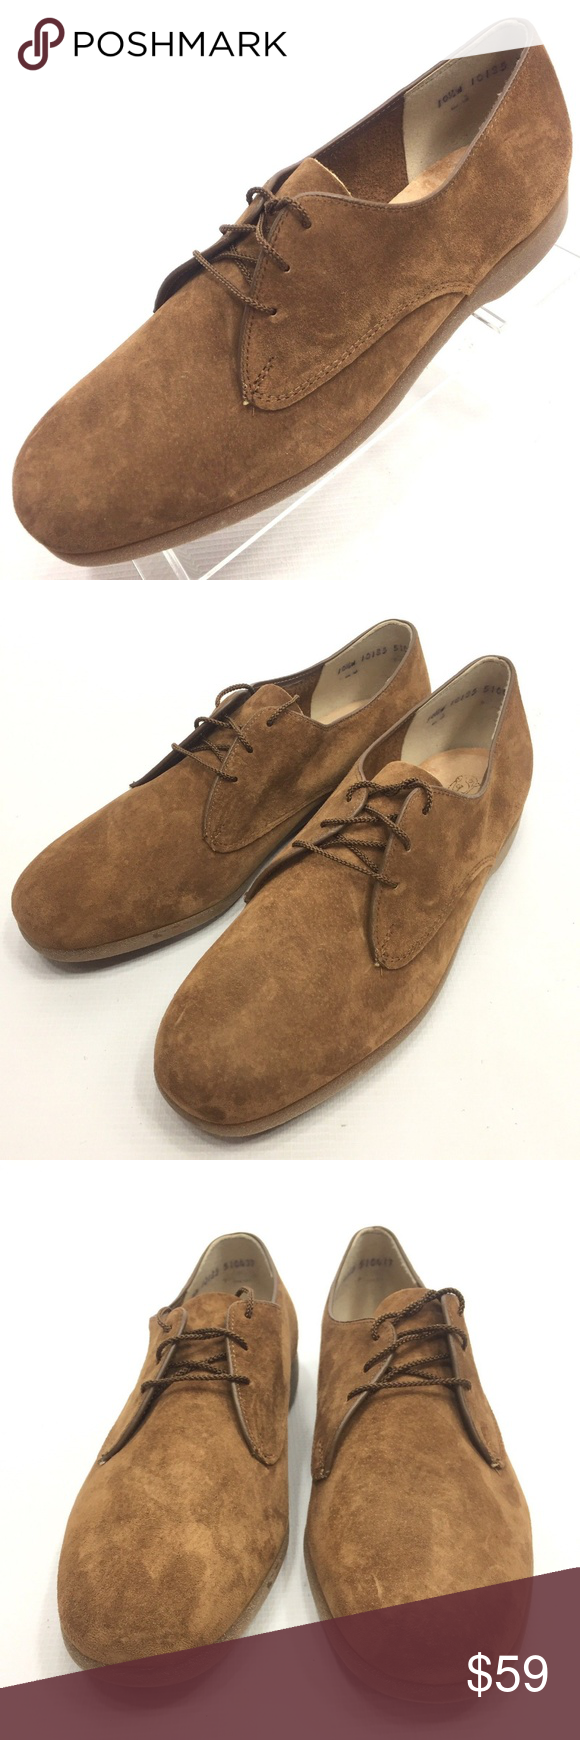 Hush Puppies Suede Derby Oxfords Shoes 10 5w Nos Hush Puppies Oxford Shoes Hush Puppies Shoes